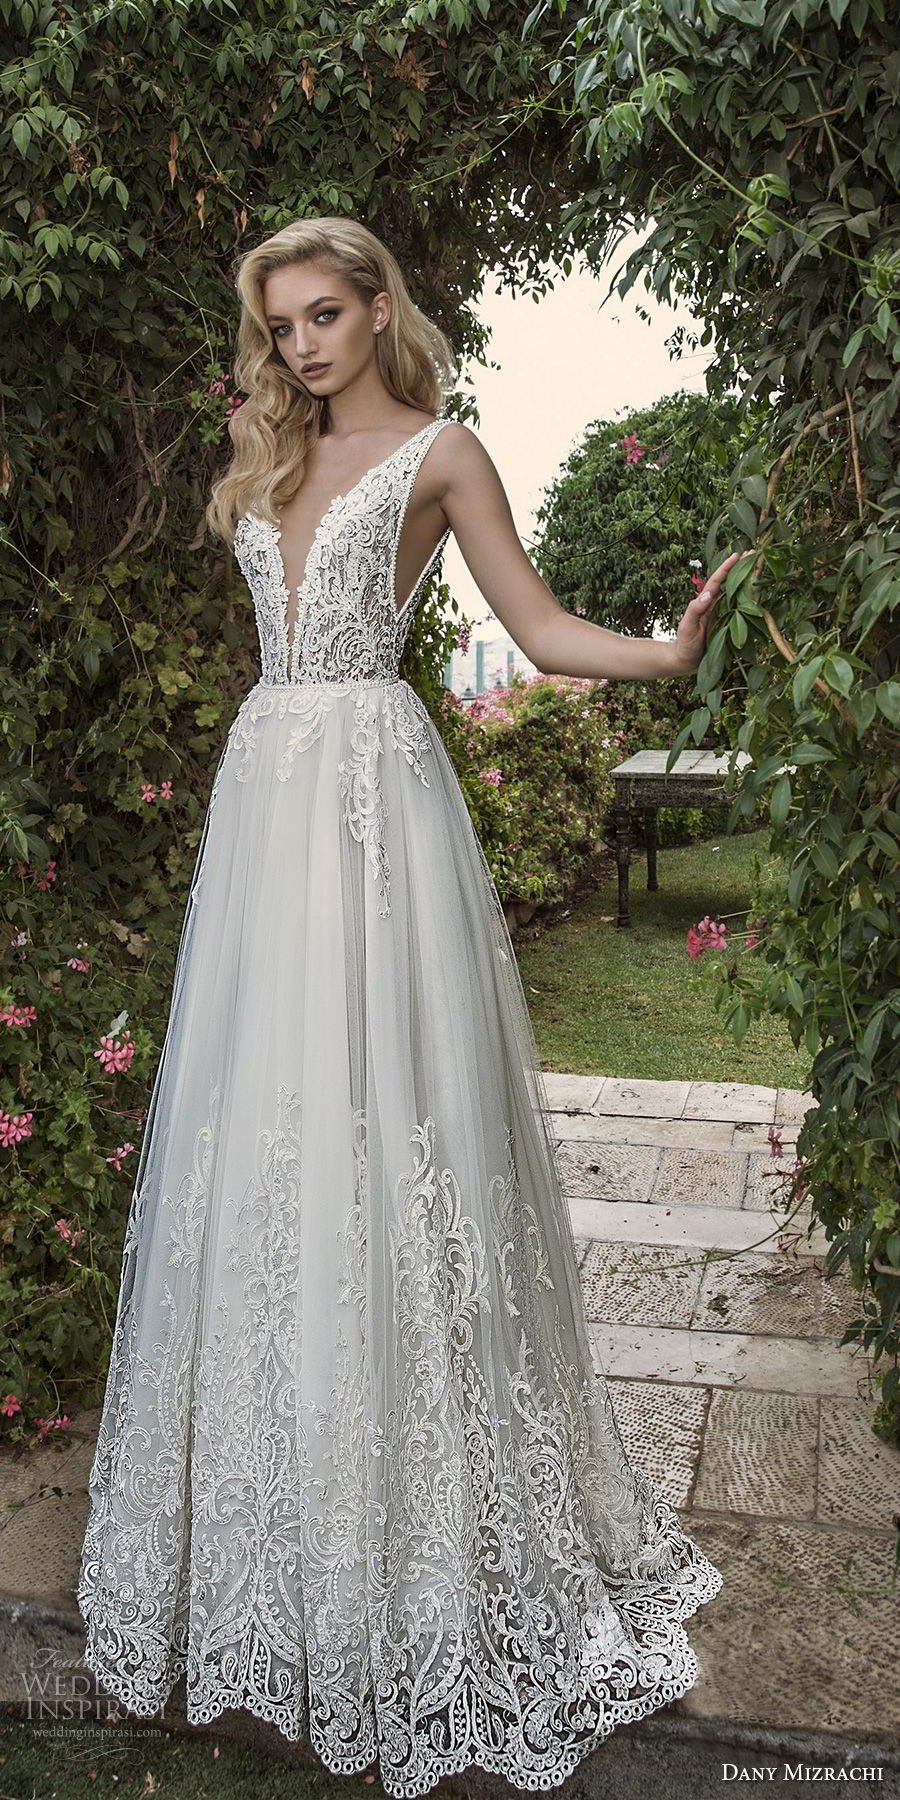 dany mizrachi spring 2018 bridal sleeveless with strap deep plunging v neck heavily embellished bodice romantic a  line wedding dress open scoop back sweep train (6) mv